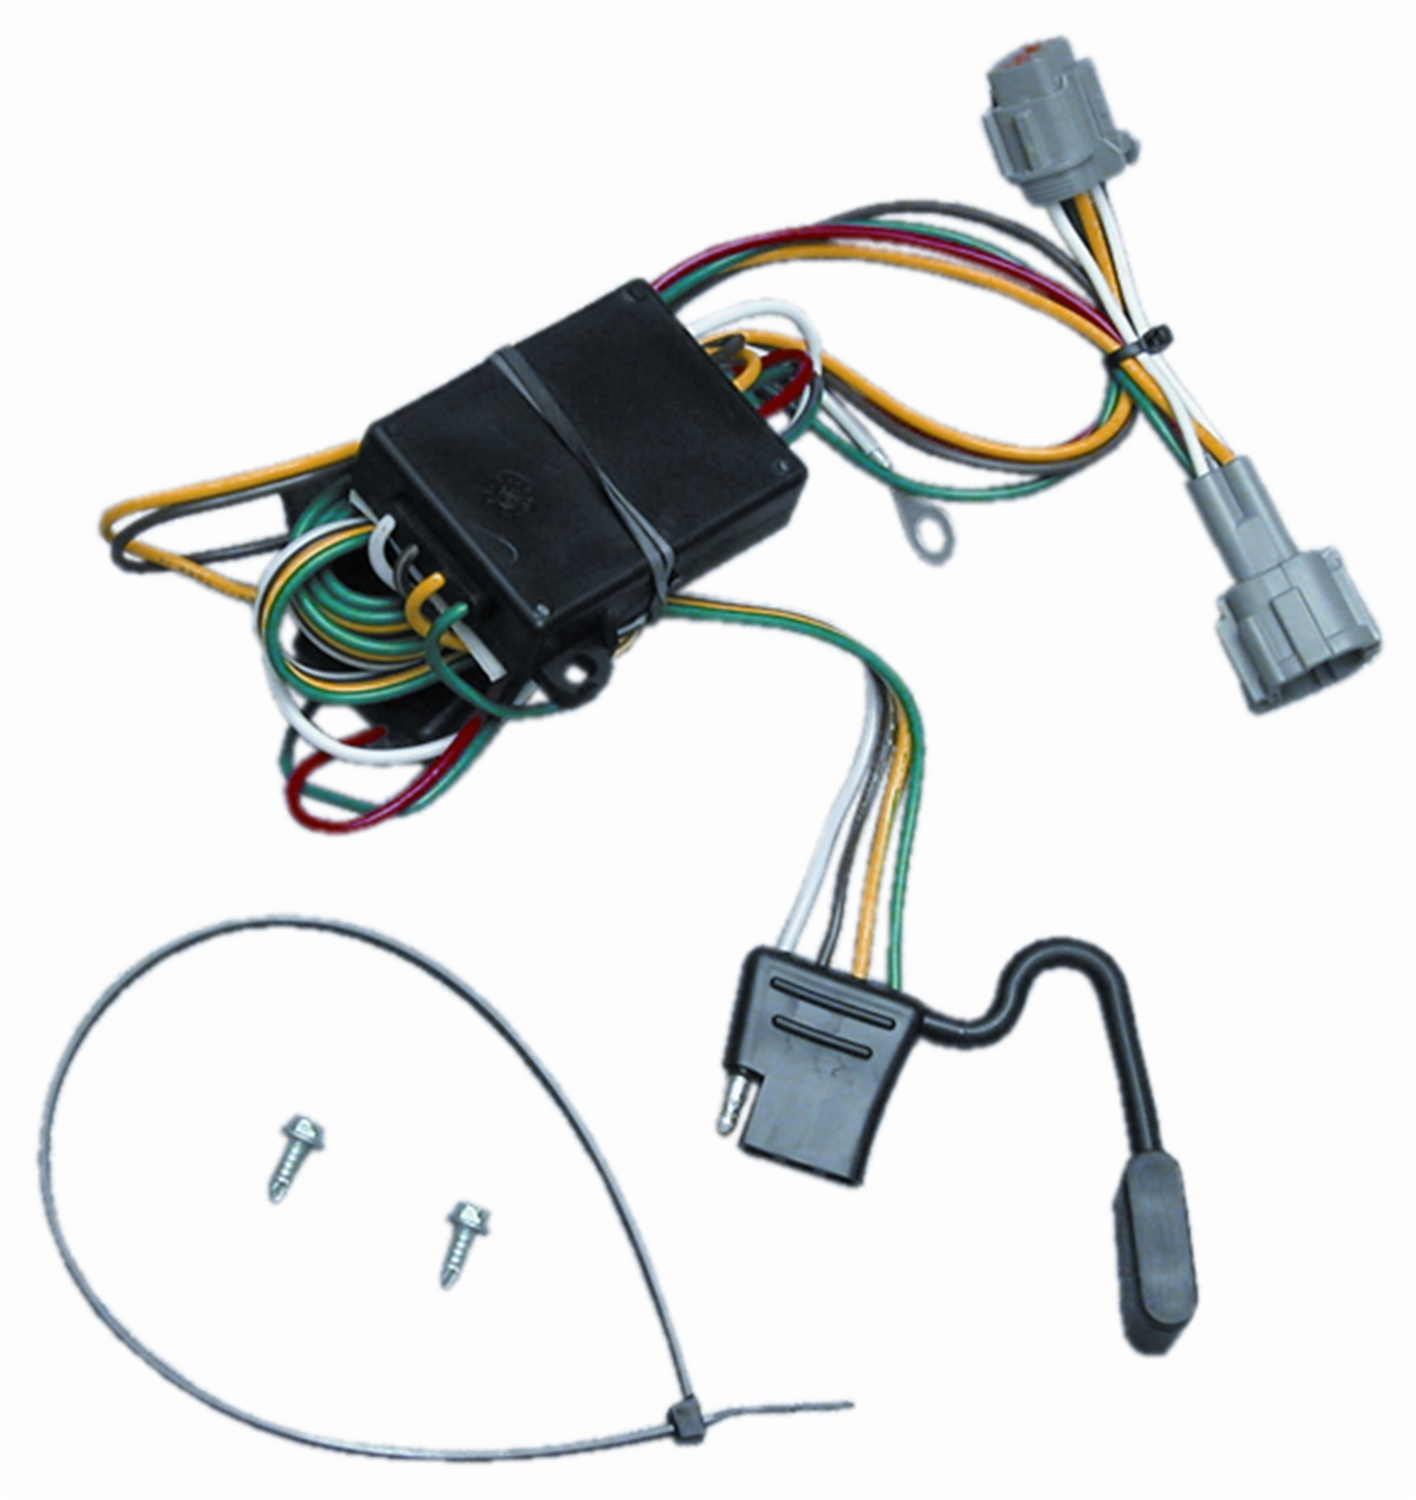 hight resolution of trailer wiring for 98 quest mini van 98 04 nissan frontier 98 nissan frontier trailer wiring harness 98 nissan frontier trailer wiring